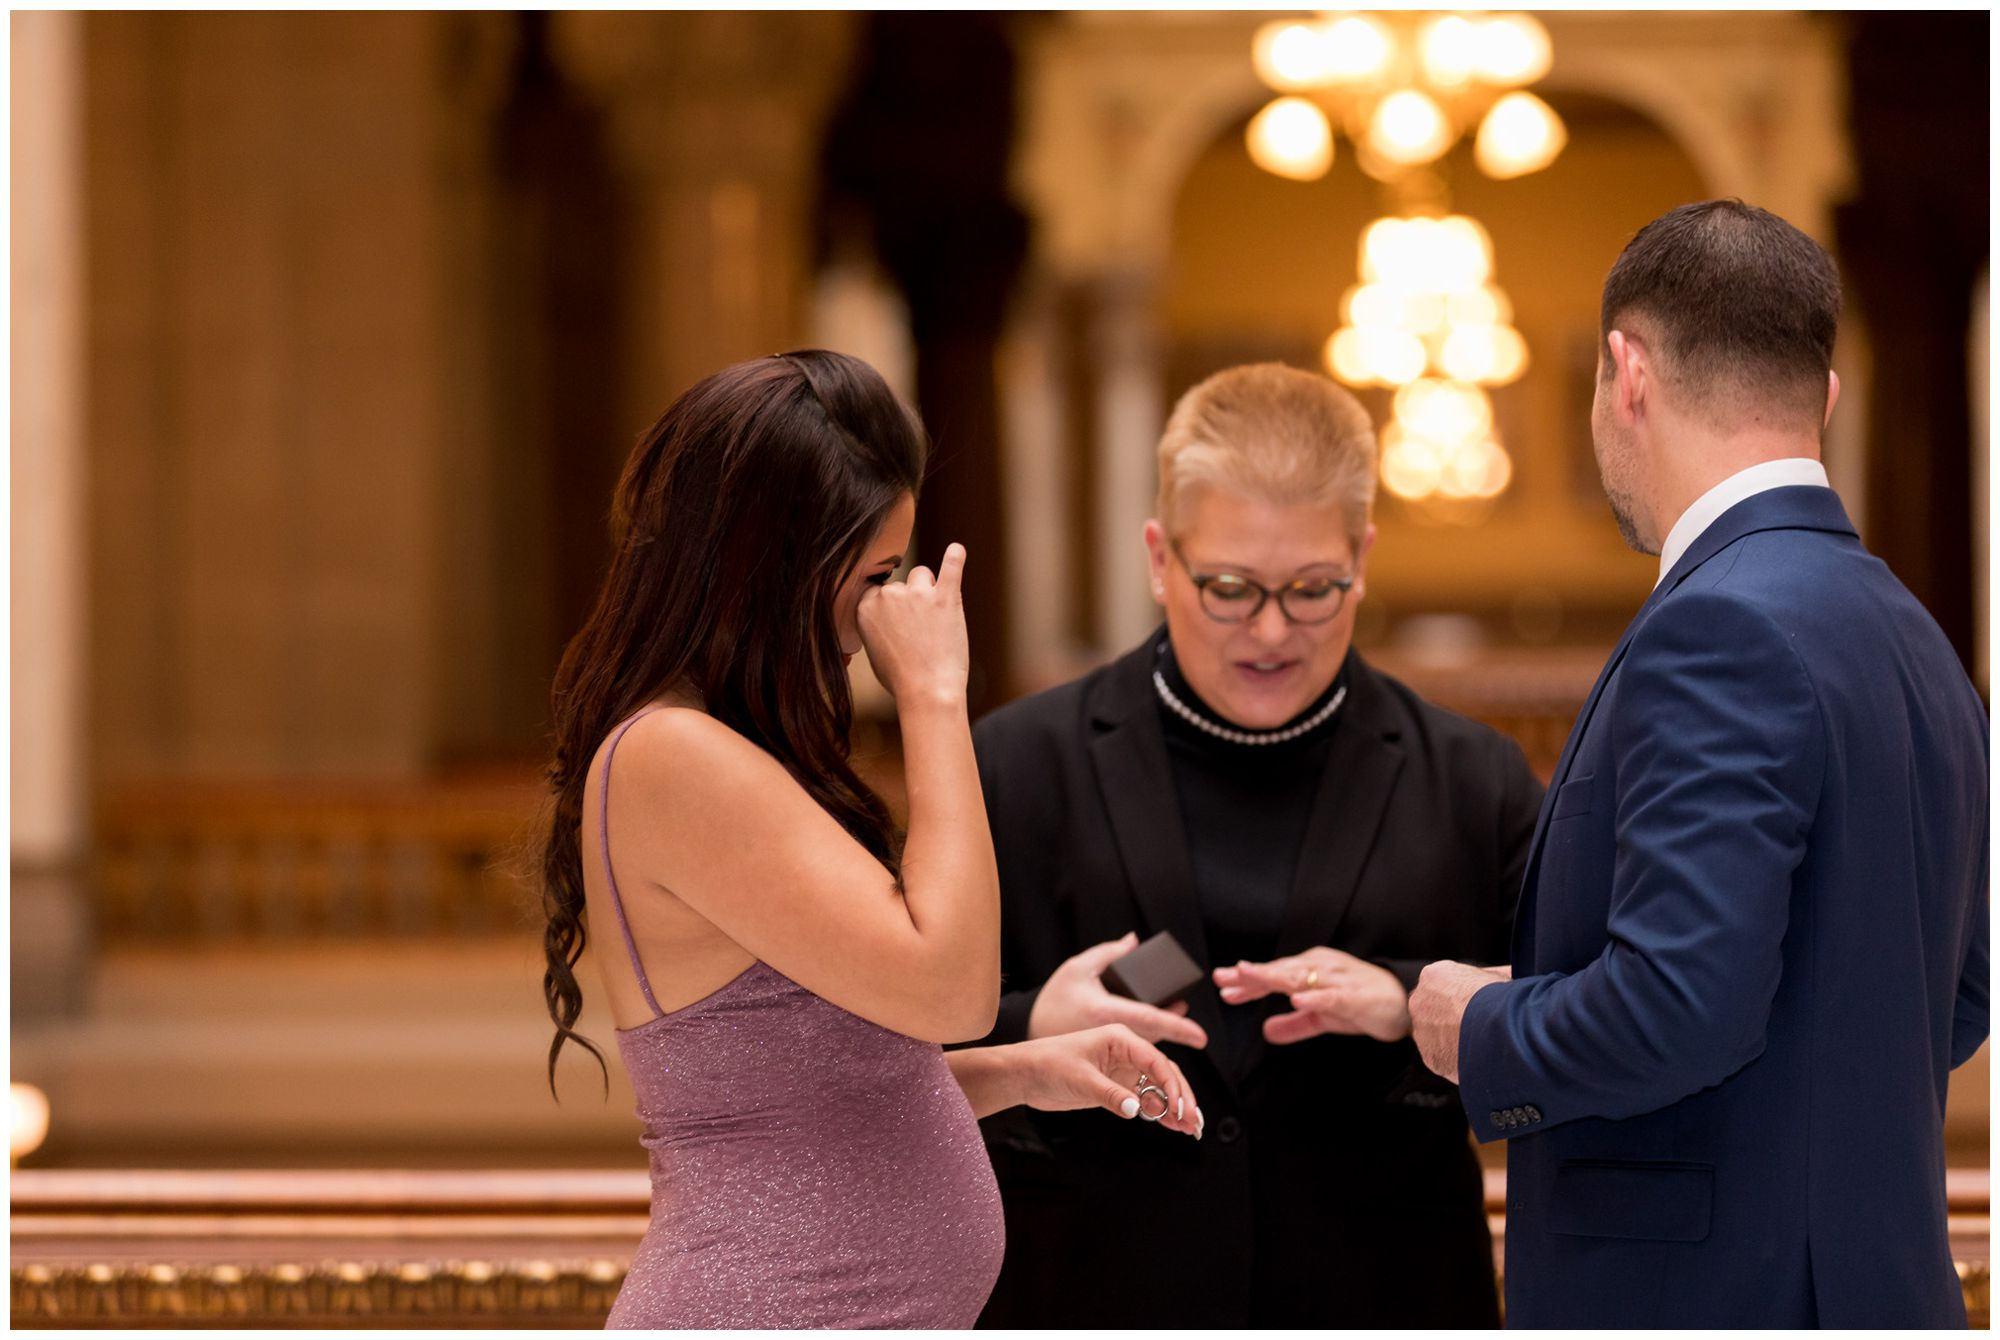 bride wipes away tears during downtown Indy elopement ceremony at Indiana Statehouse